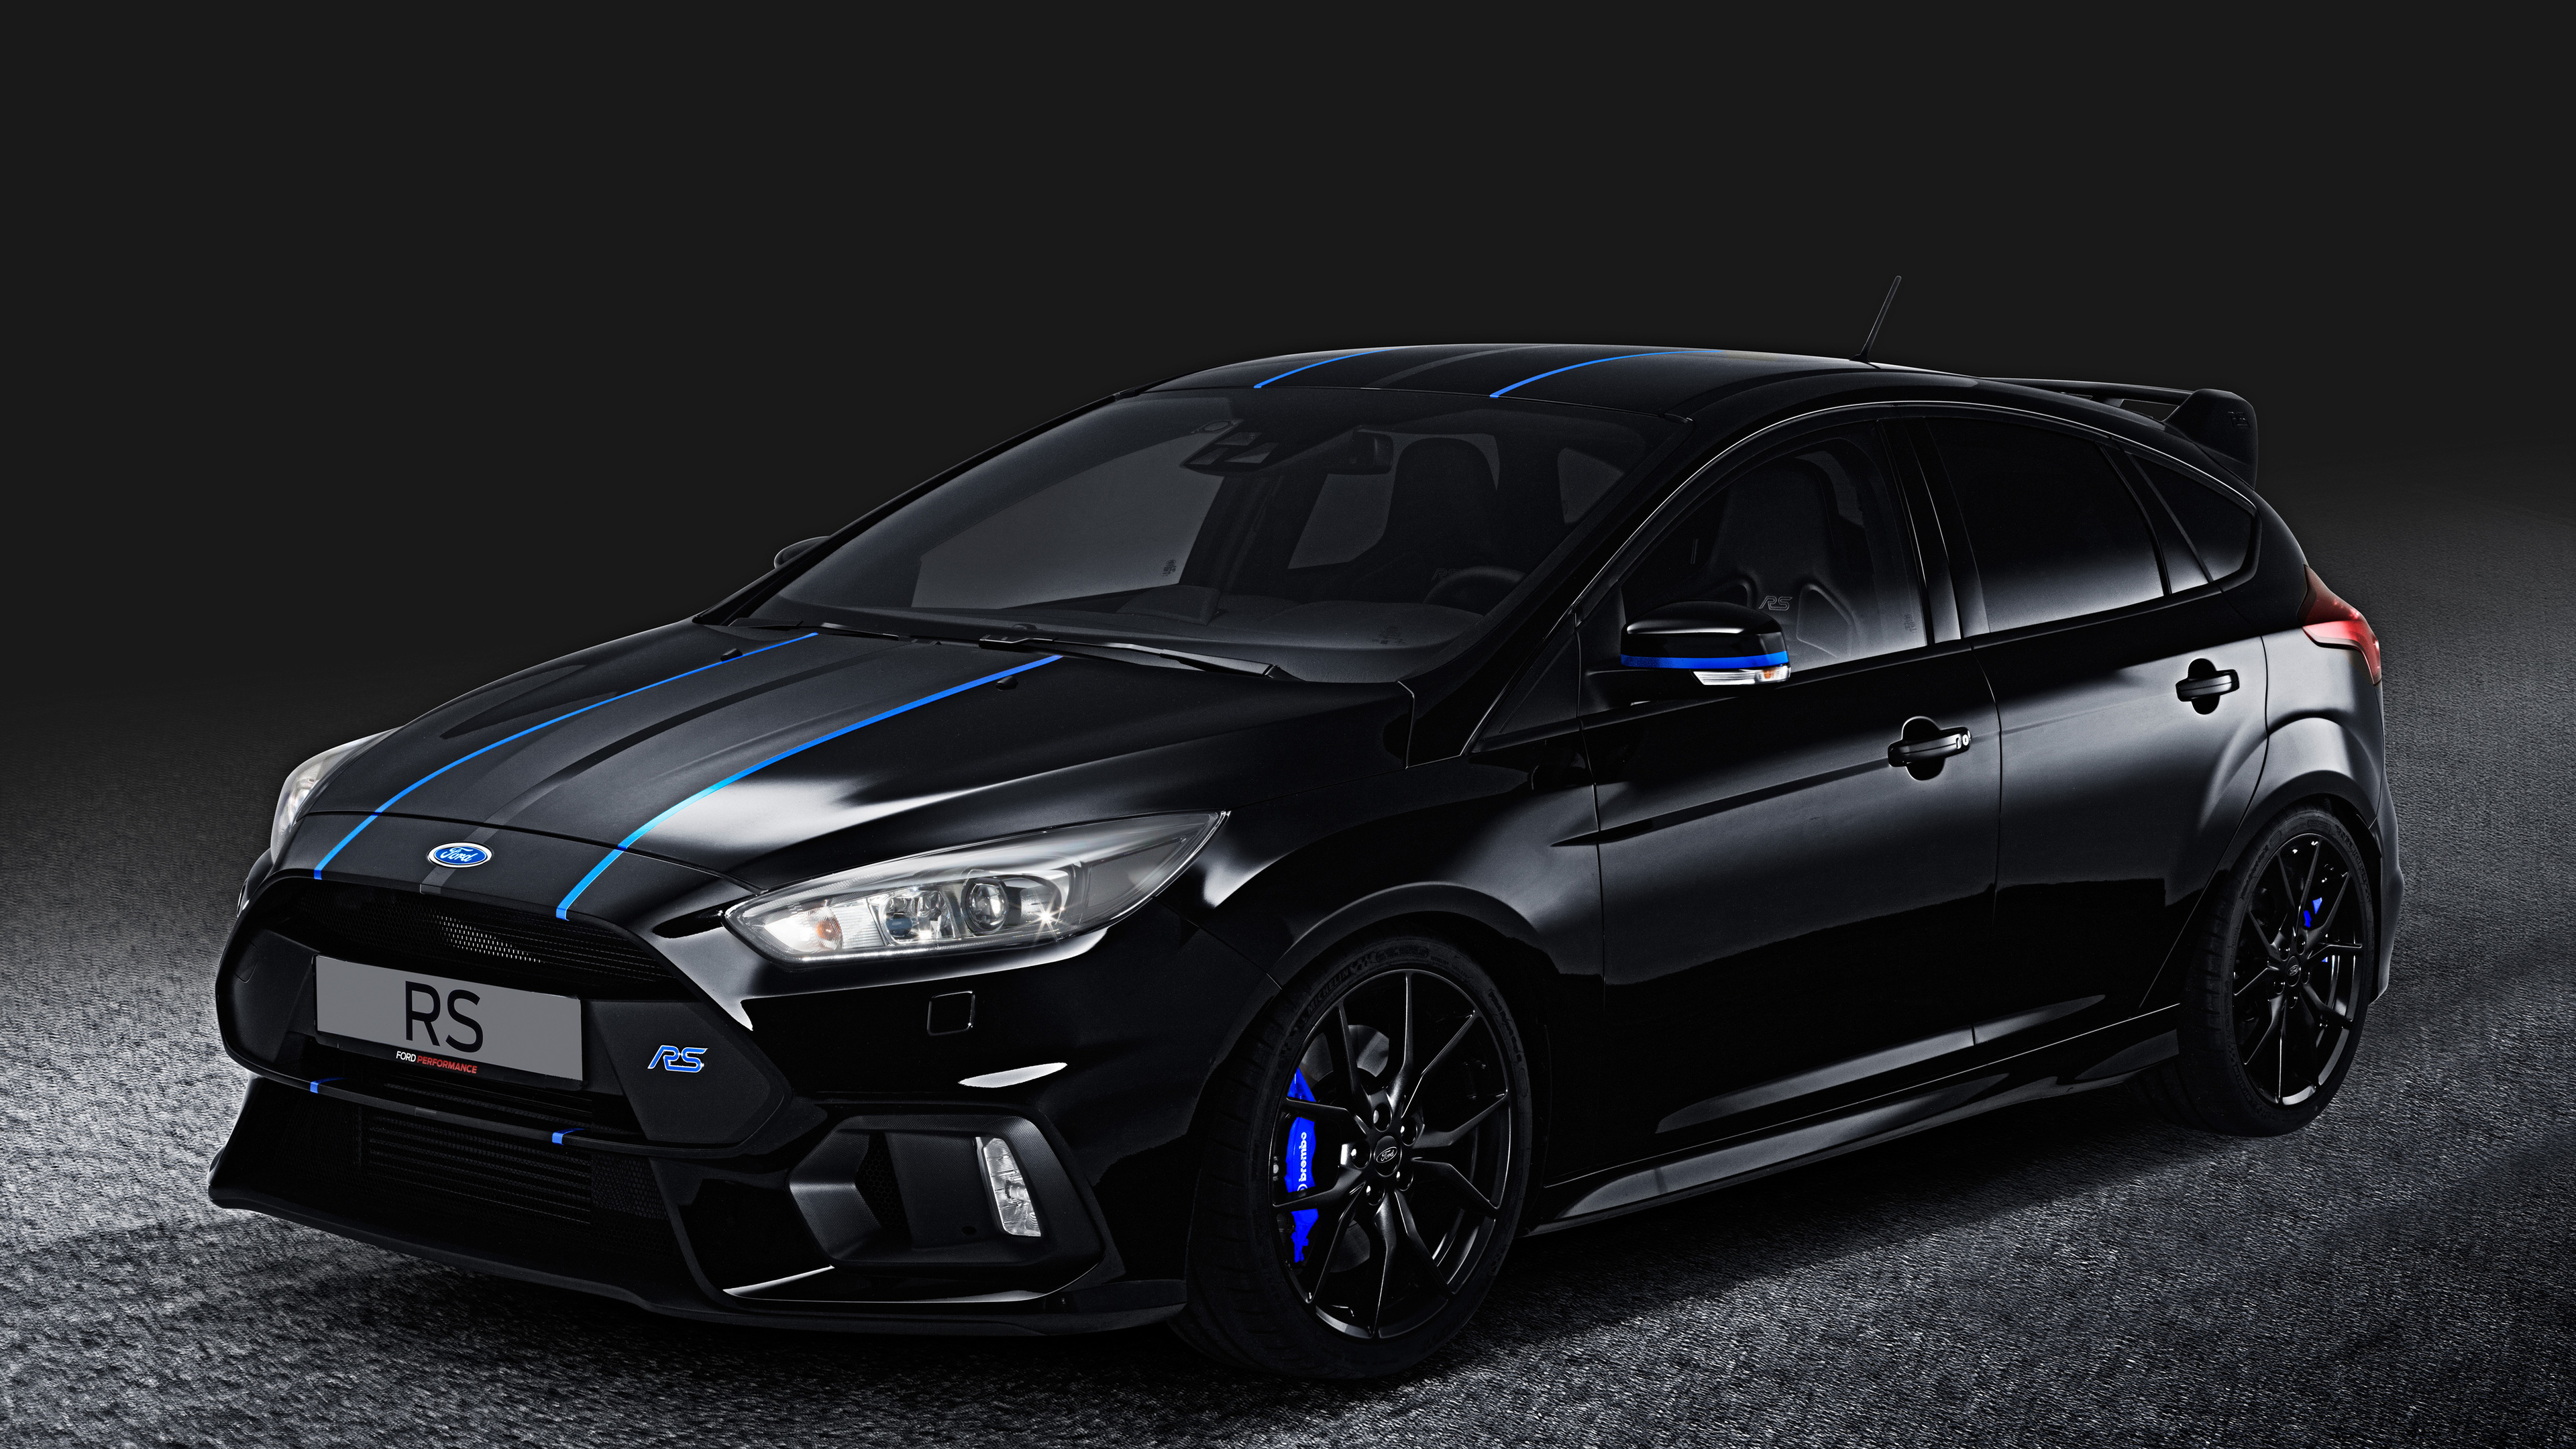 ford focus rs performance parts 4k 1539108160 - Ford Focus RS Performance Parts 4k - hd-wallpapers, ford wallpapers, ford focus wallpapers, cars wallpapers, 4k-wallpapers, 2017 cars wallpapers